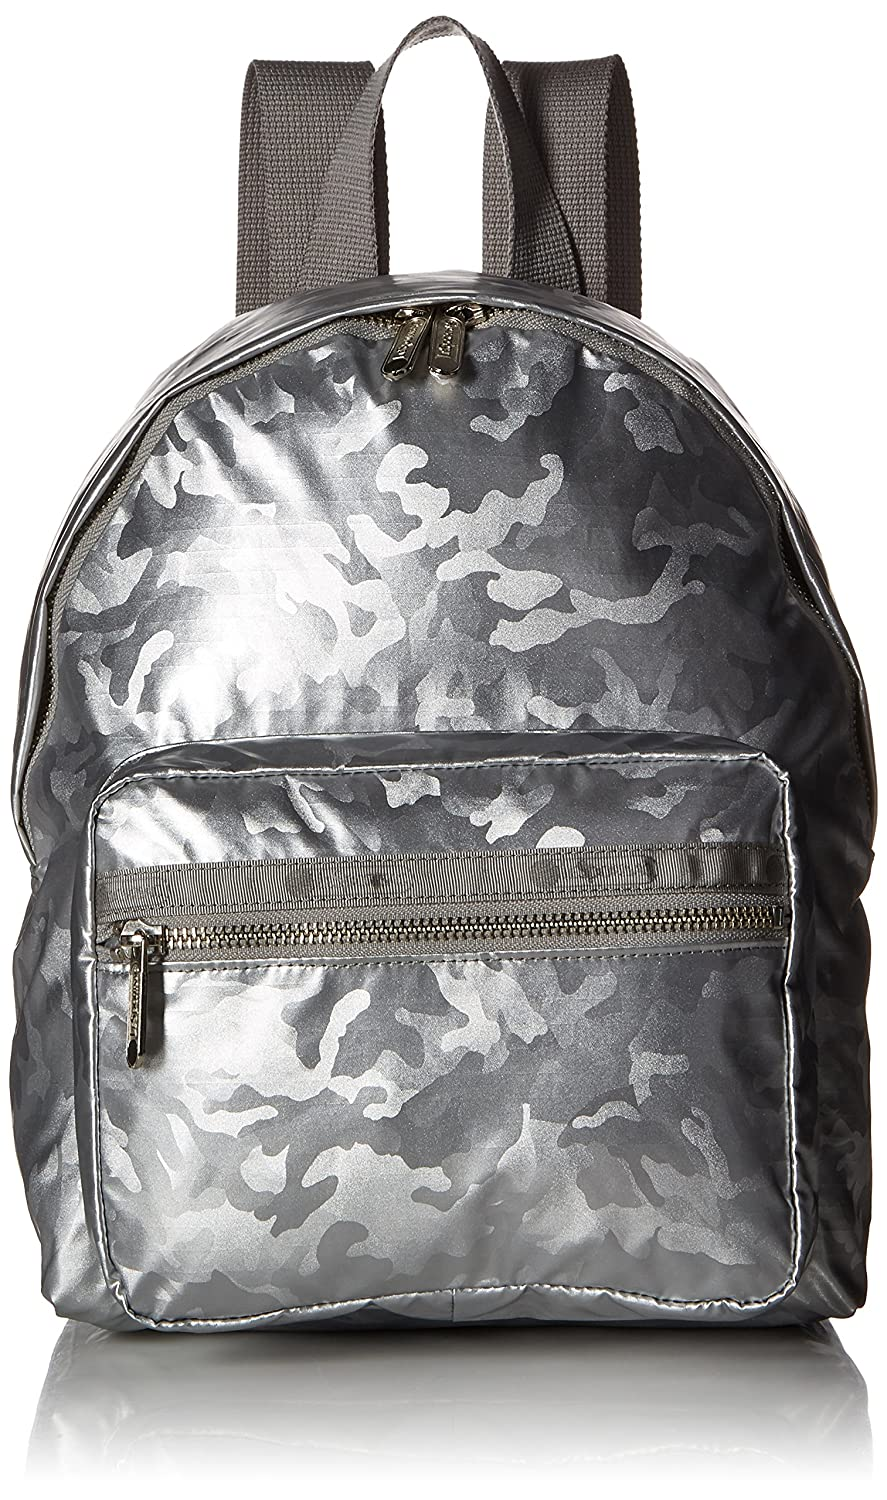 Patent Camo Silver One Size LeSportsac Classic Cruising Backpack